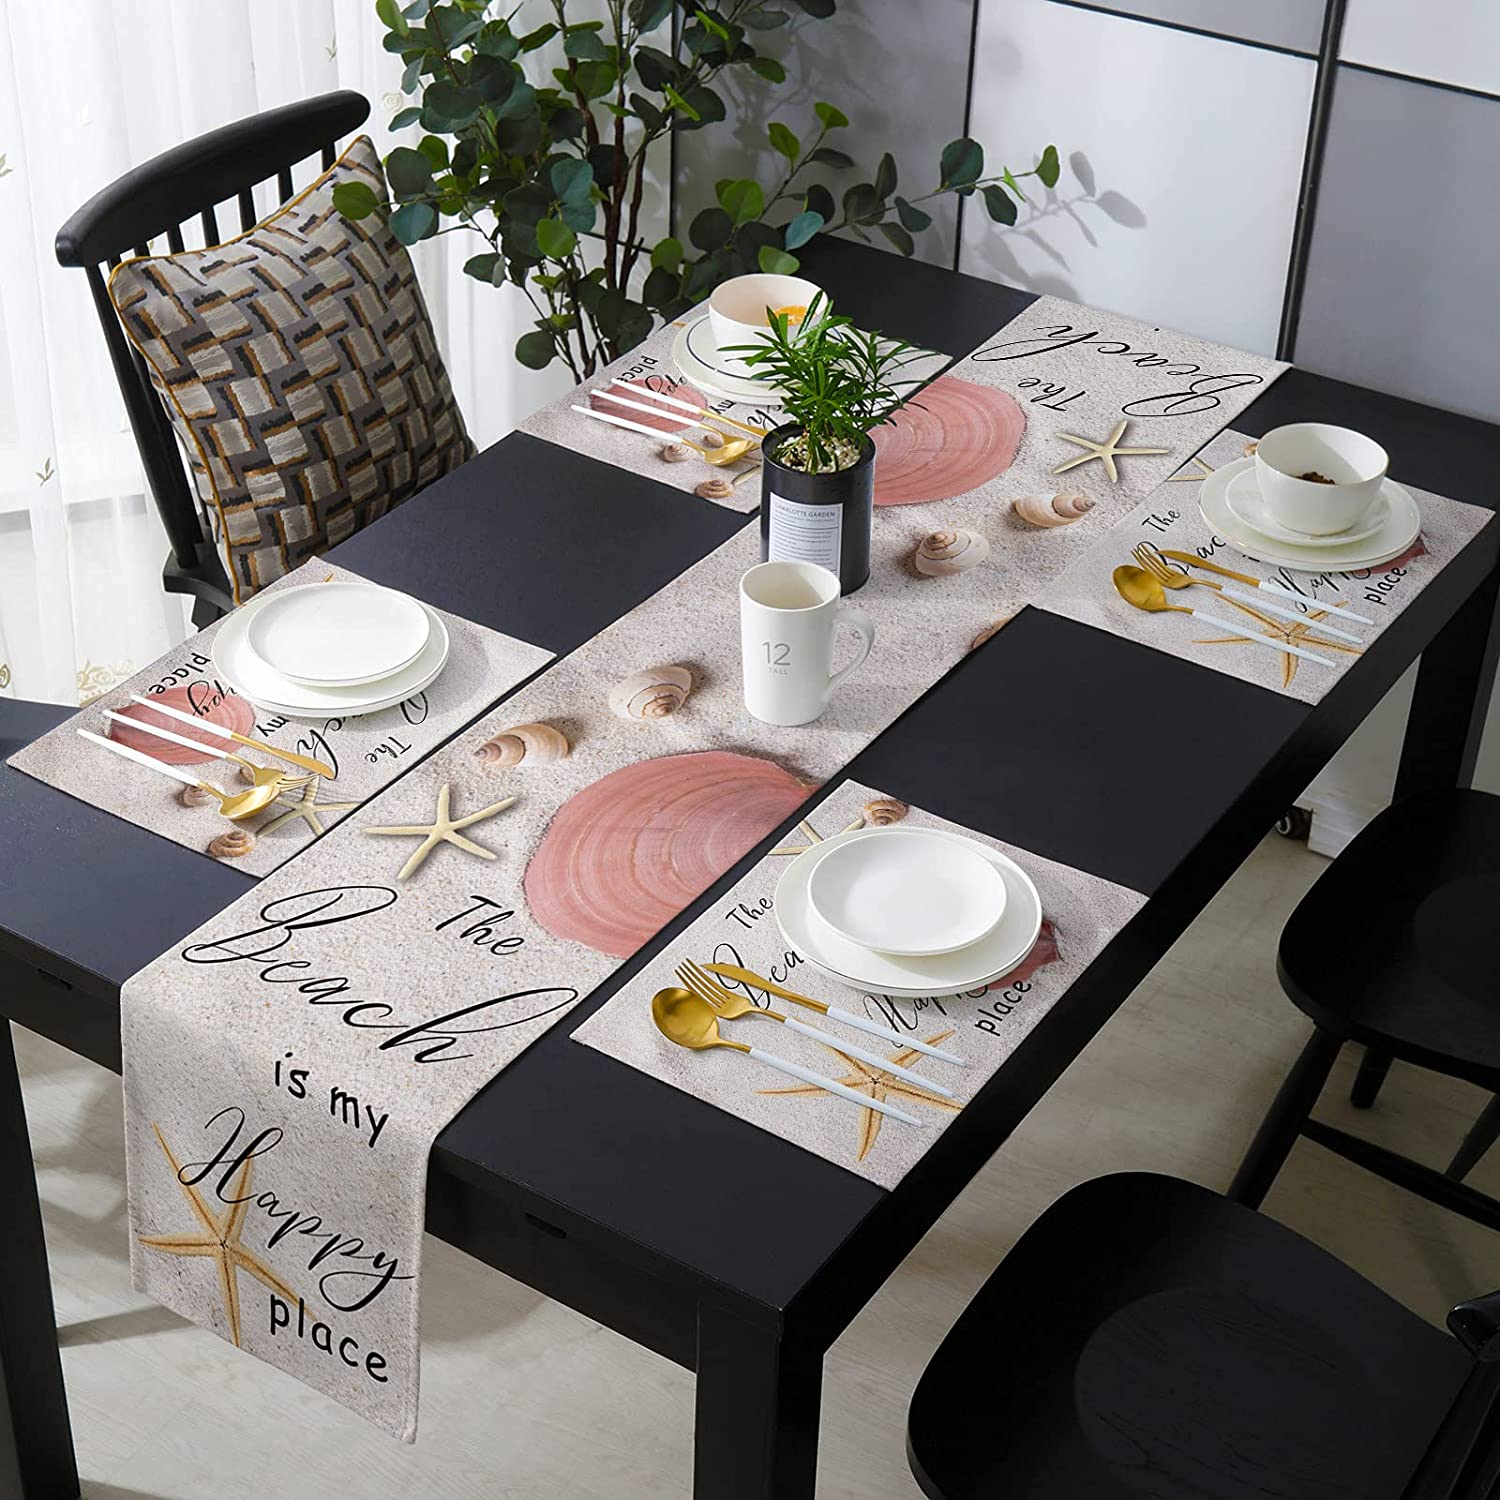 PIEPLE Popular brand Table Runner Sets with - 6 35% OFF Mats Placemats Matc